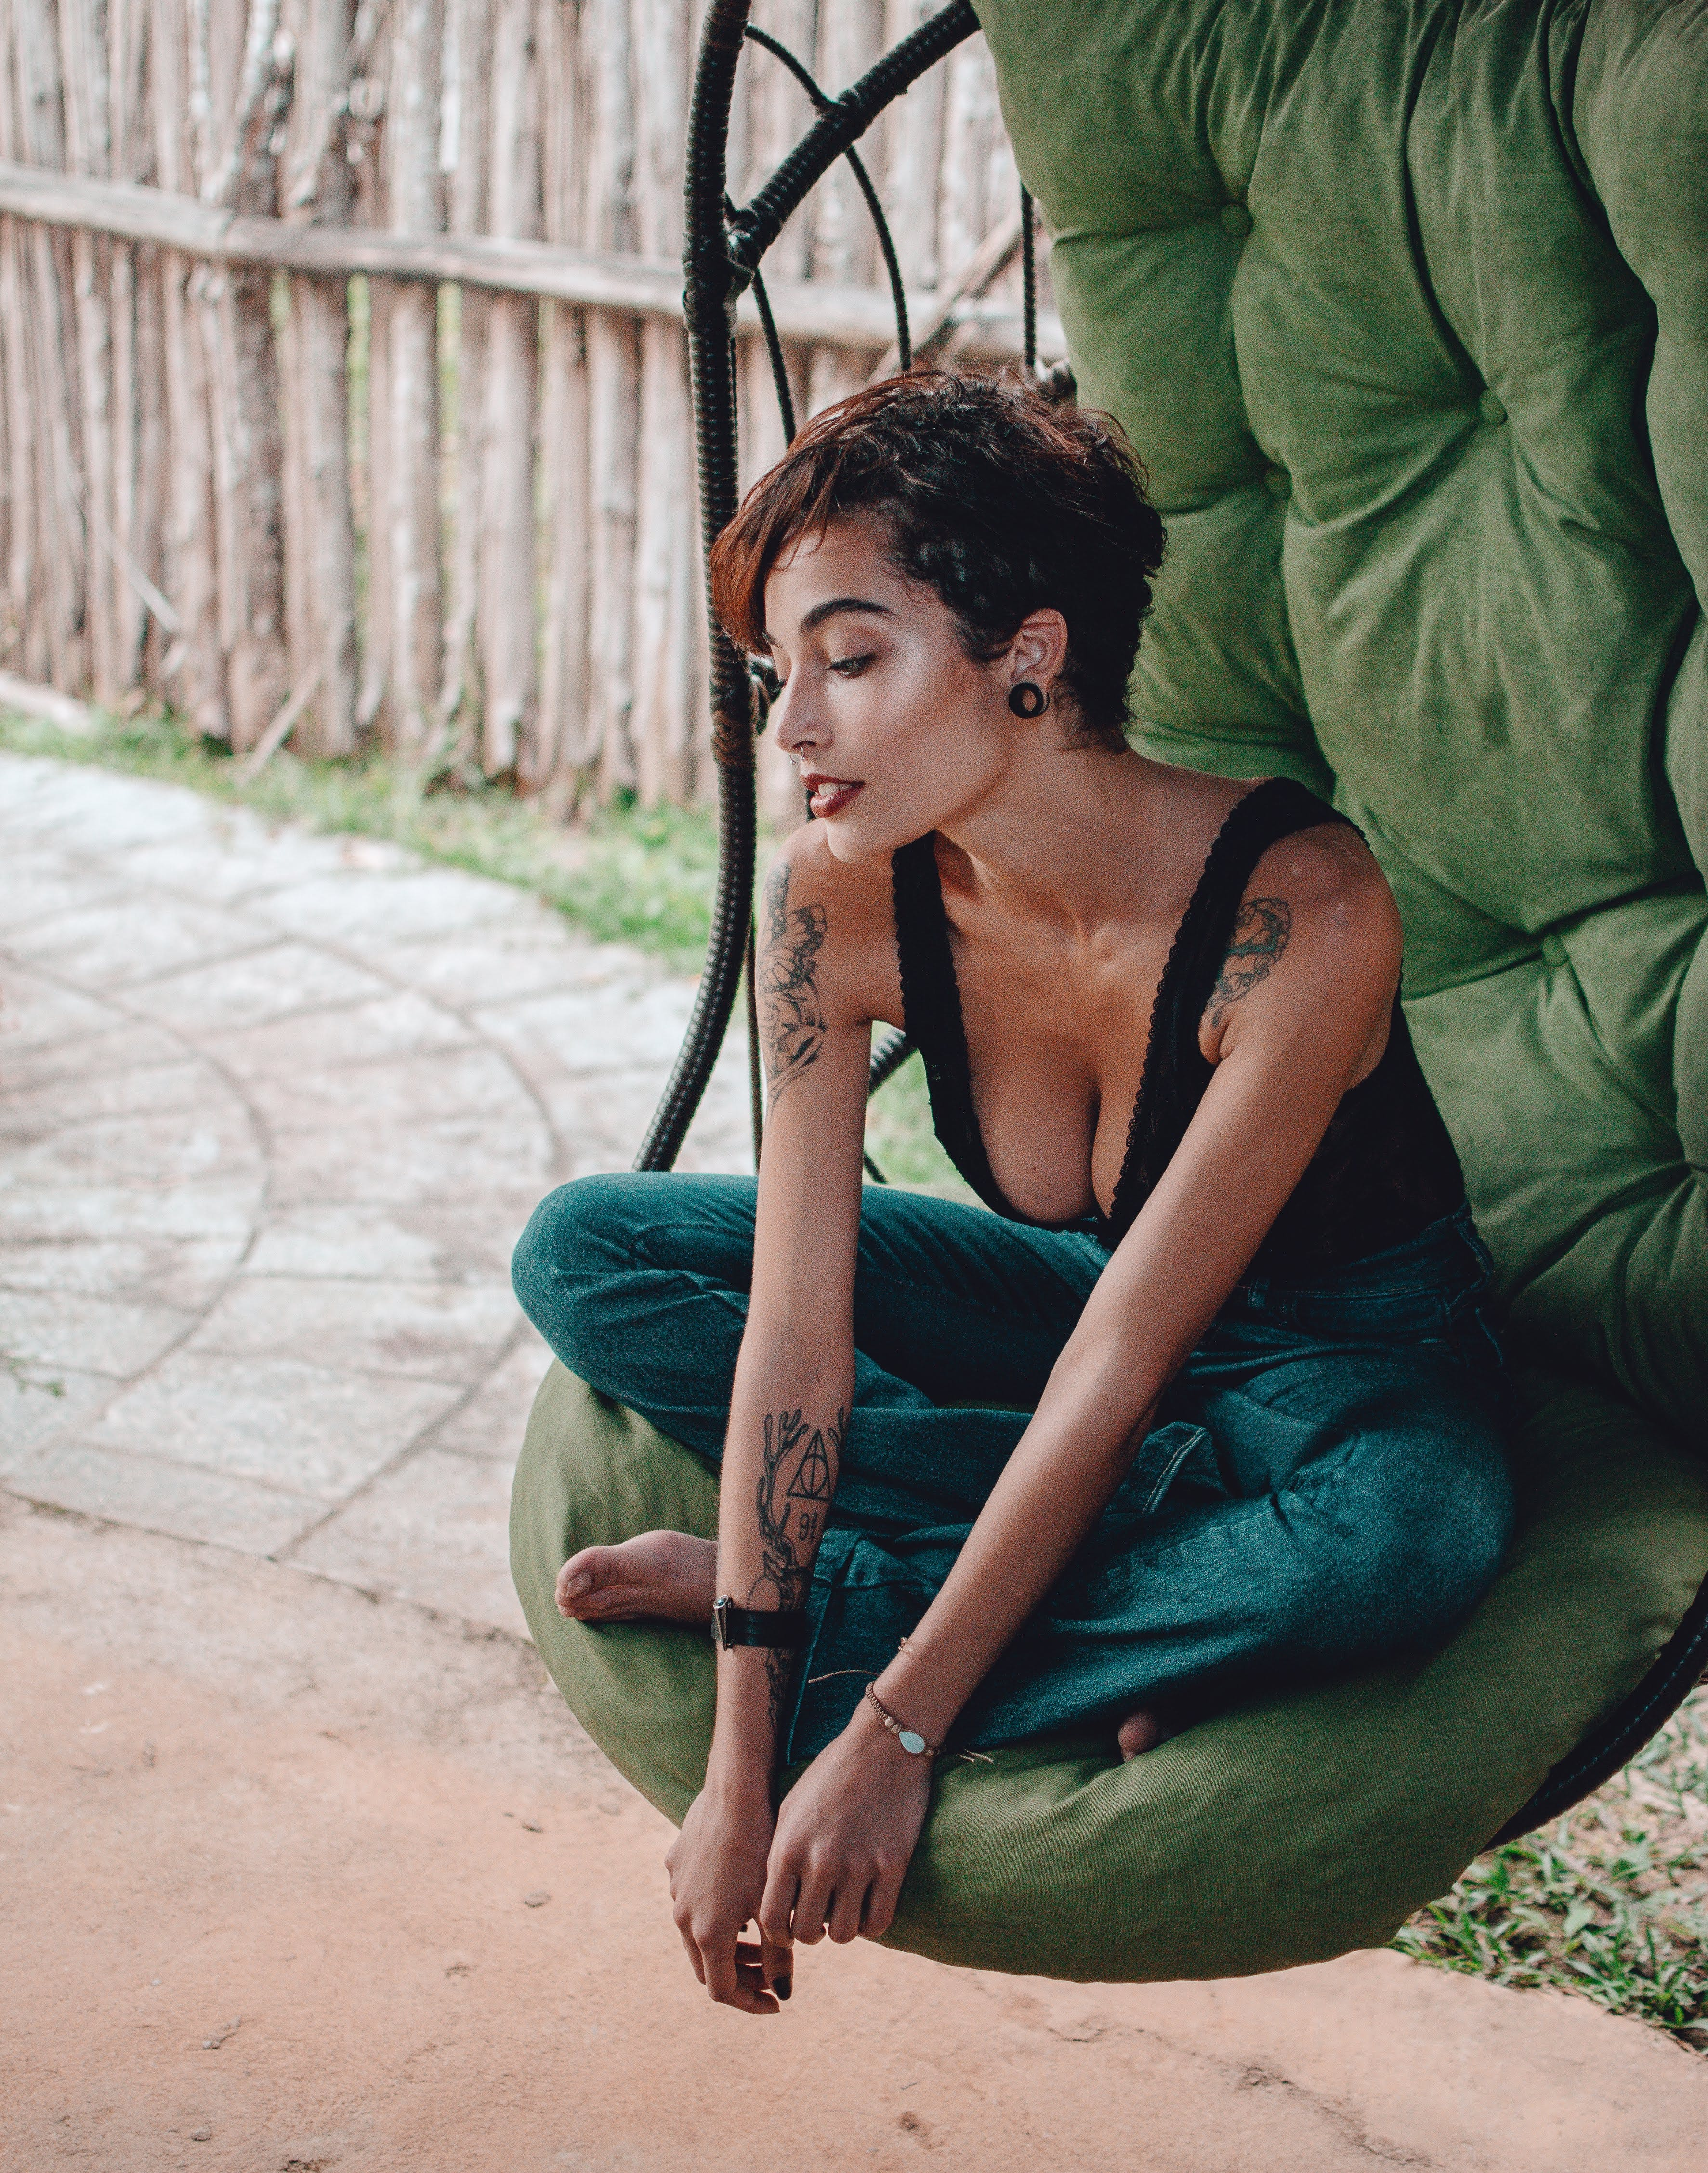 Woman Sitting on Hanging Egg Chair Near Wooden Fence